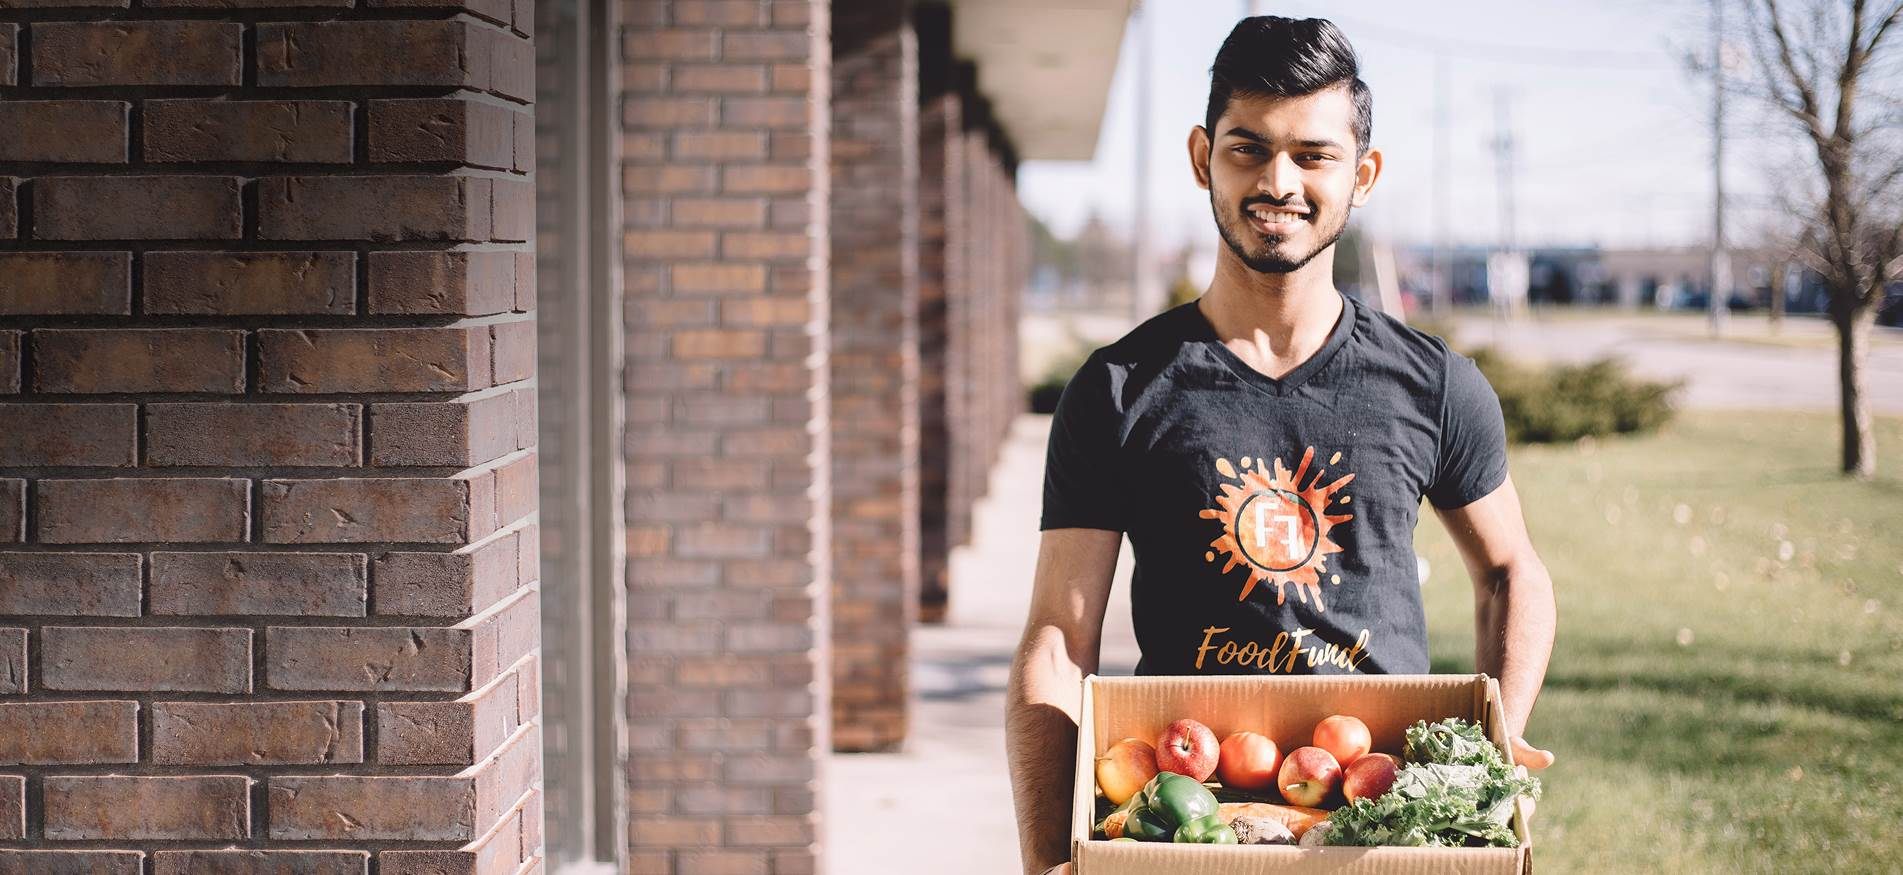 Divyansh Ojha, a 20-year-old student, stands outside with a cardboard box of fruits and vegetables.